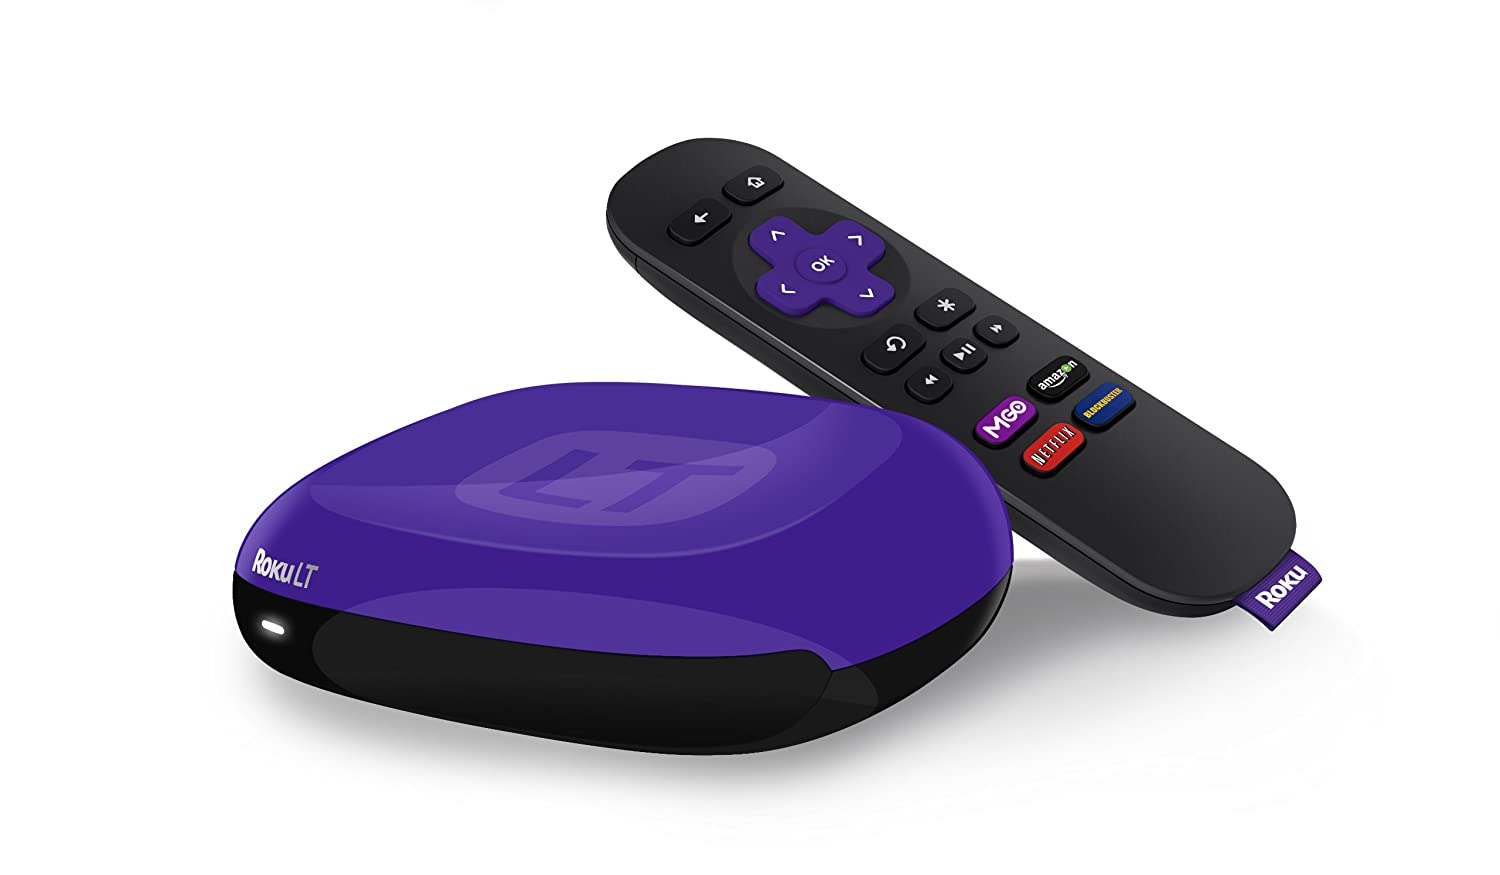 Roku LT Streaming Media Player